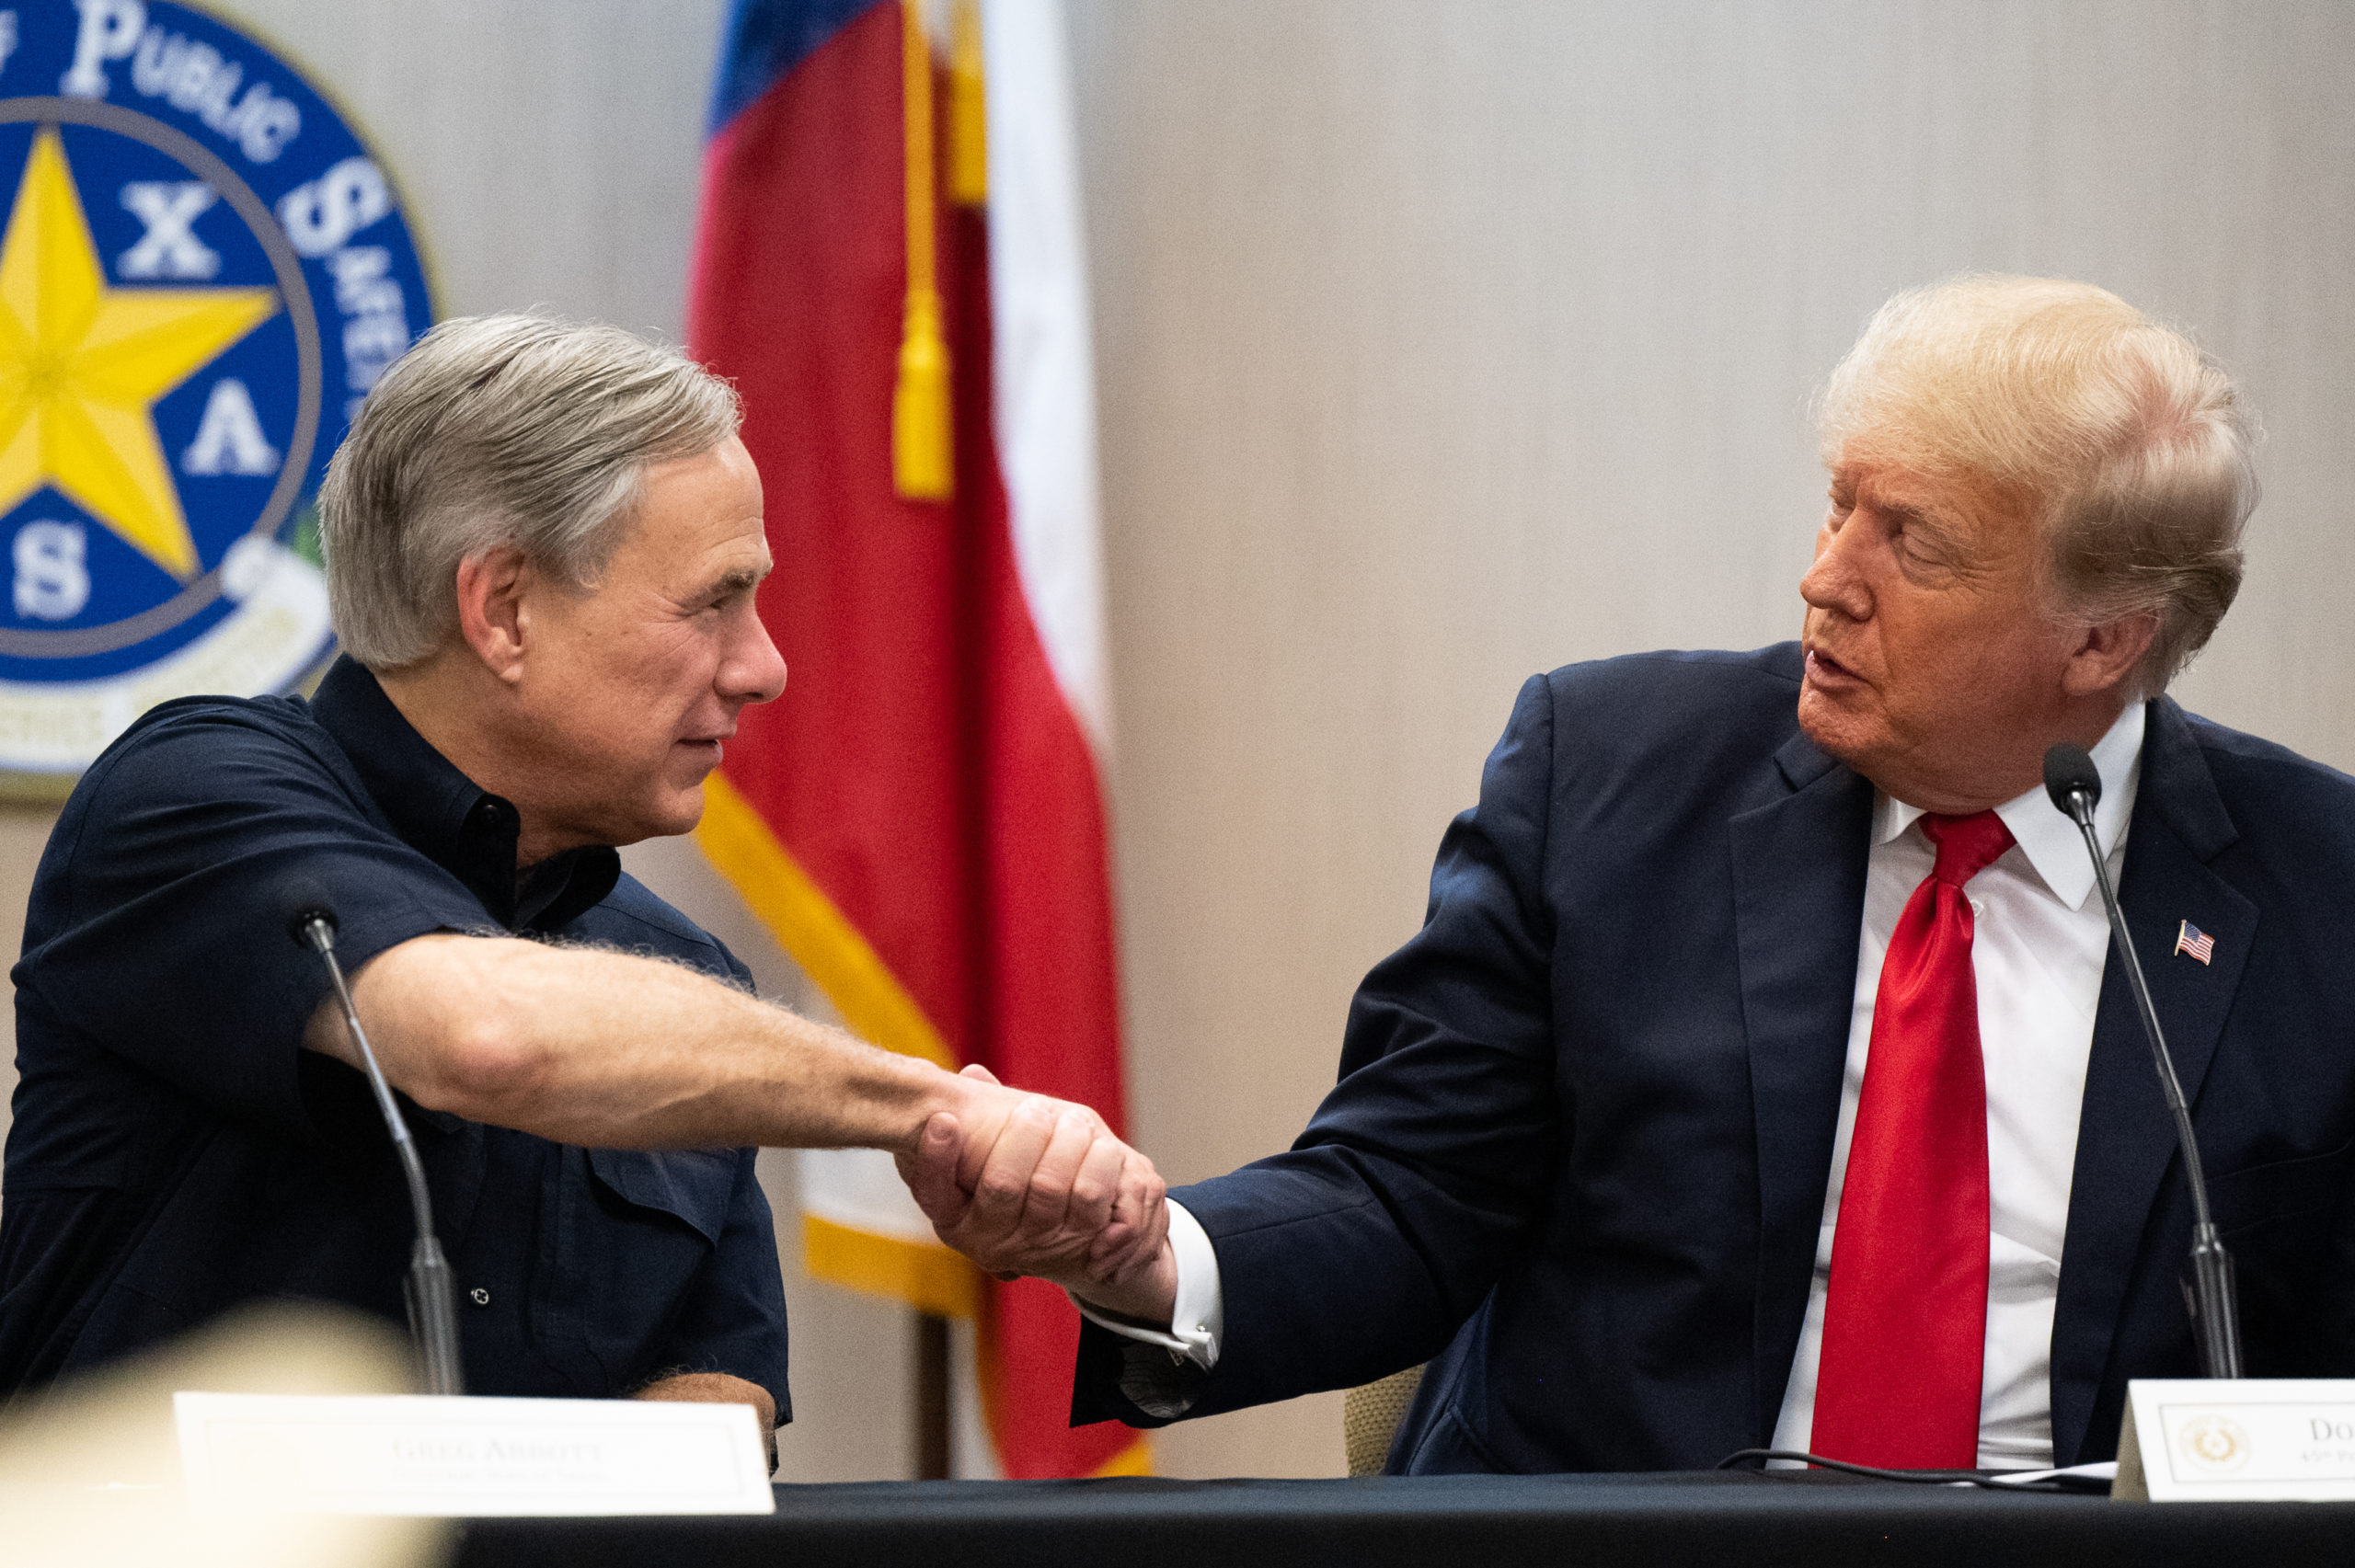 Texas Gov. Greg Abbott and former President Donald Trump shake hands during a border security briefing on June 30, 2021 in Weslaco, Texas. (Photo by Brandon Bell/Getty Images)